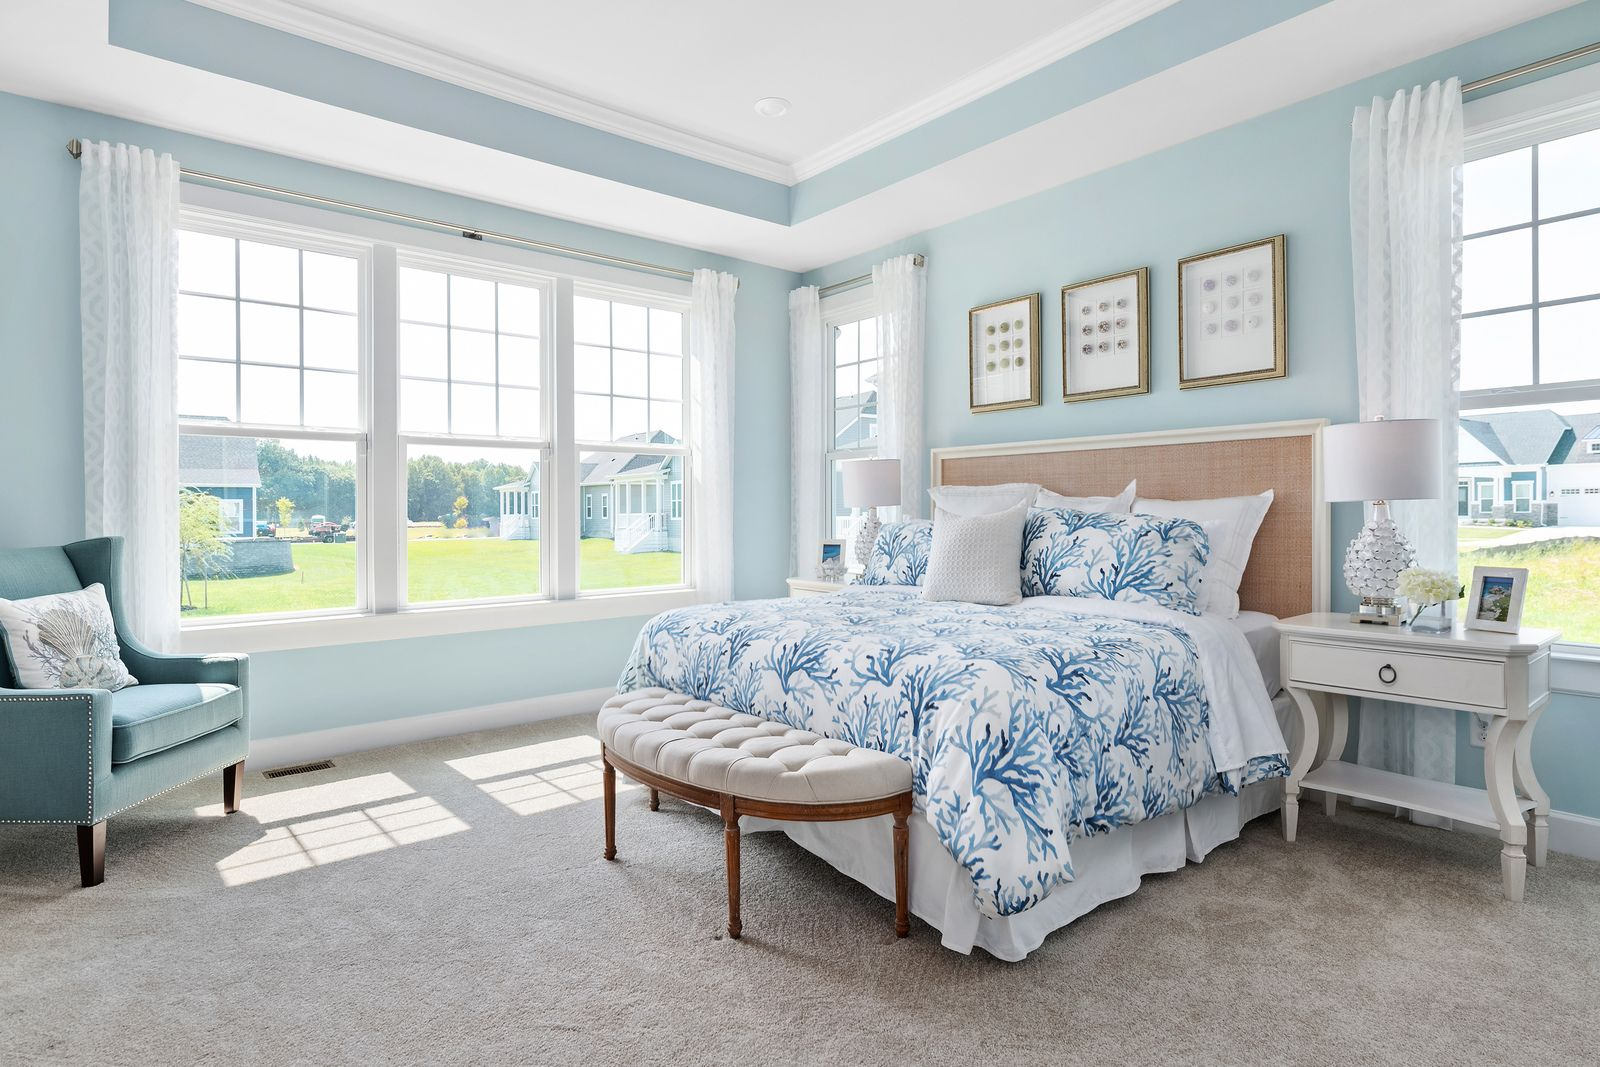 Bedroom featured in the Clarkson By NVHomes in Sussex, DE